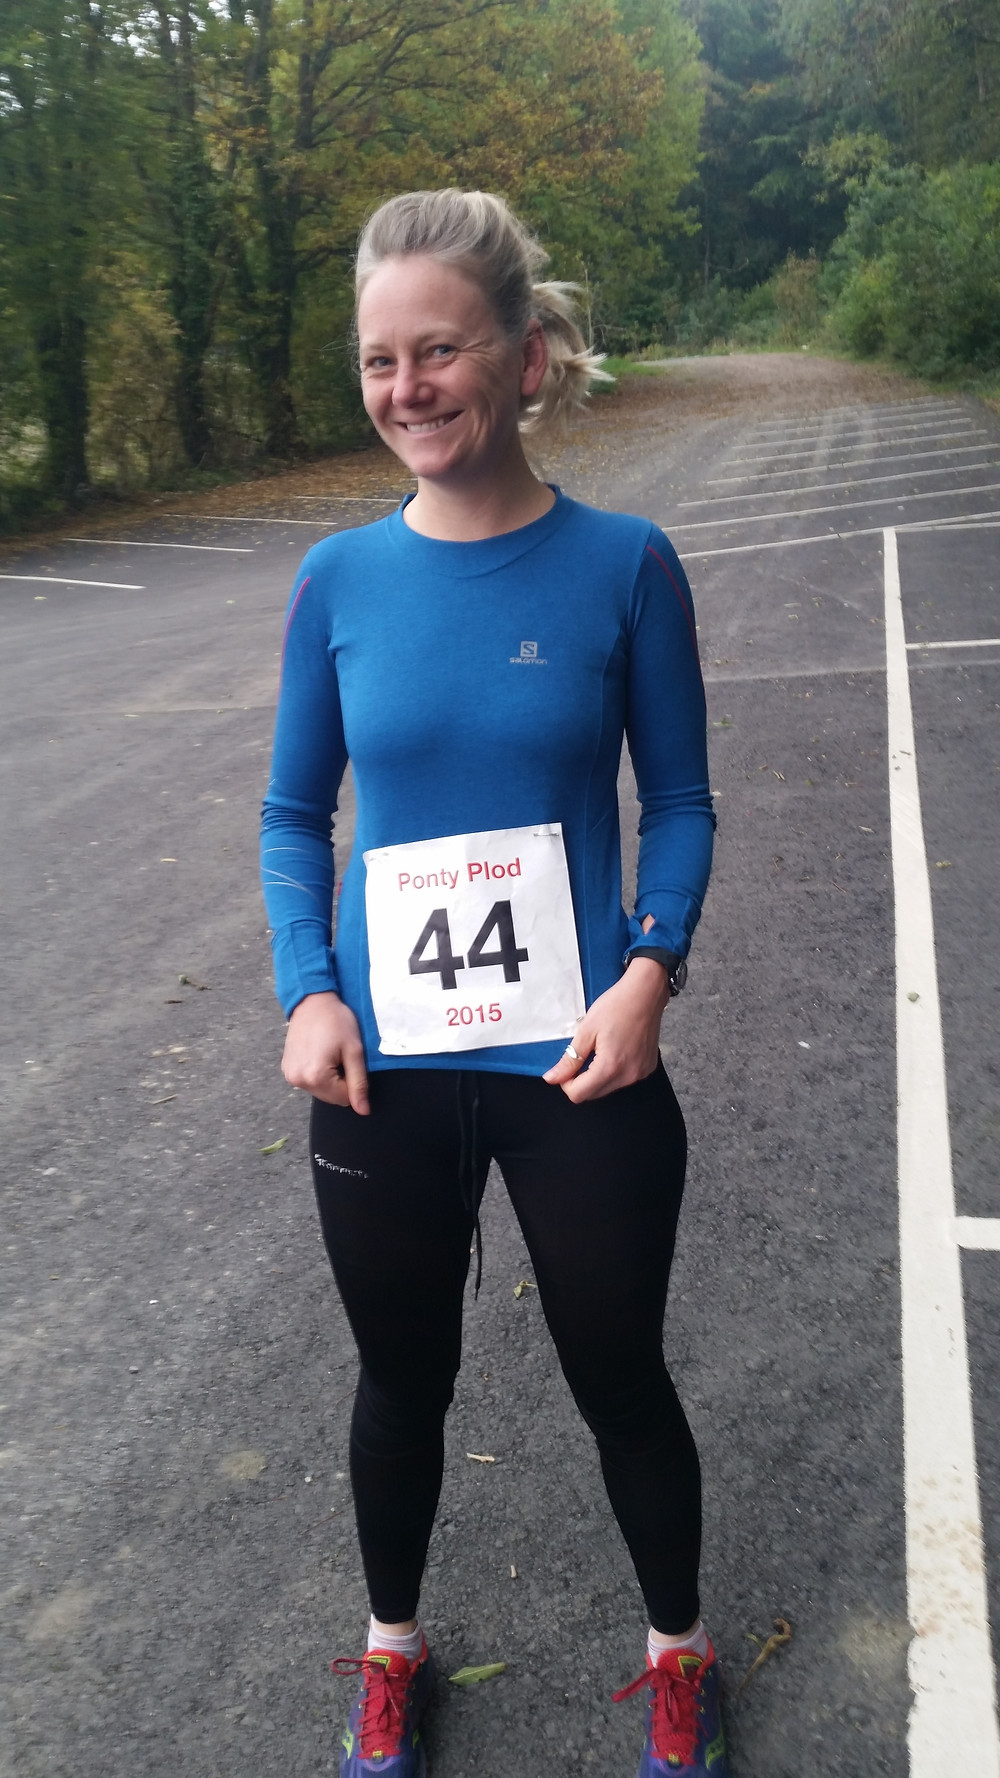 Me with running mojo intact!